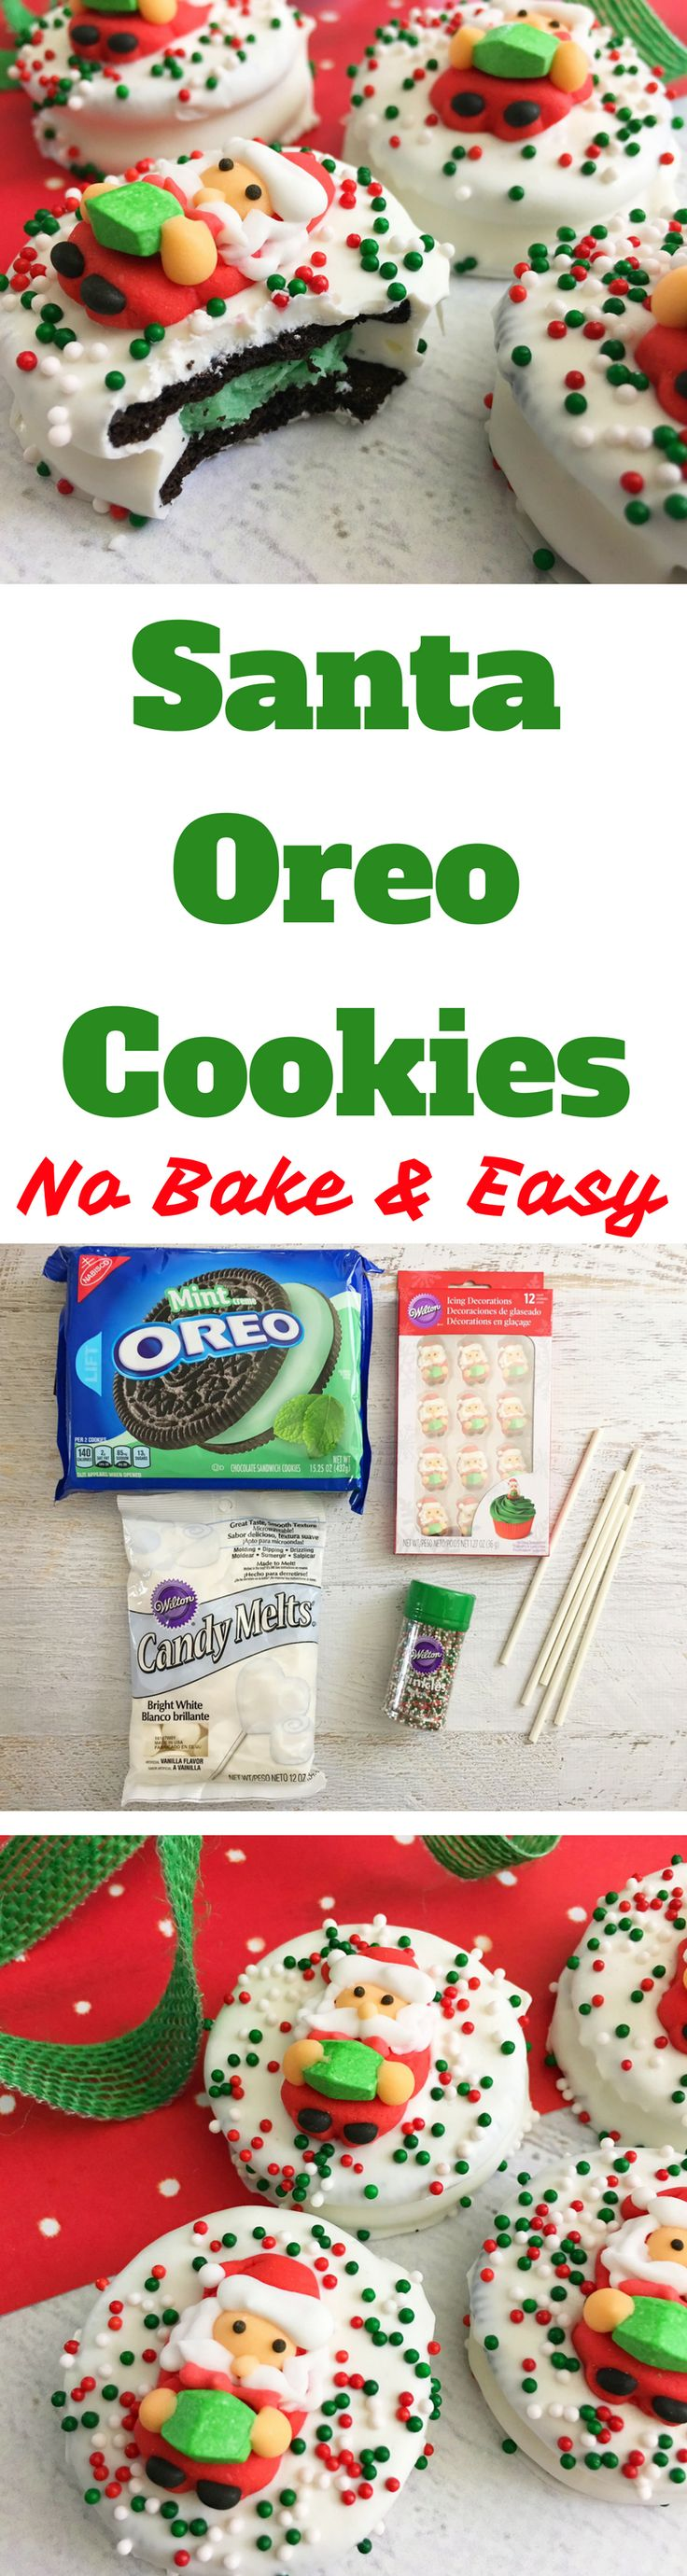 Take the guesswork out of holiday treats and make these no-bake Christmas cookies. These Santa Oreo Cookies are so easy and impressive. #ChristmasCookies